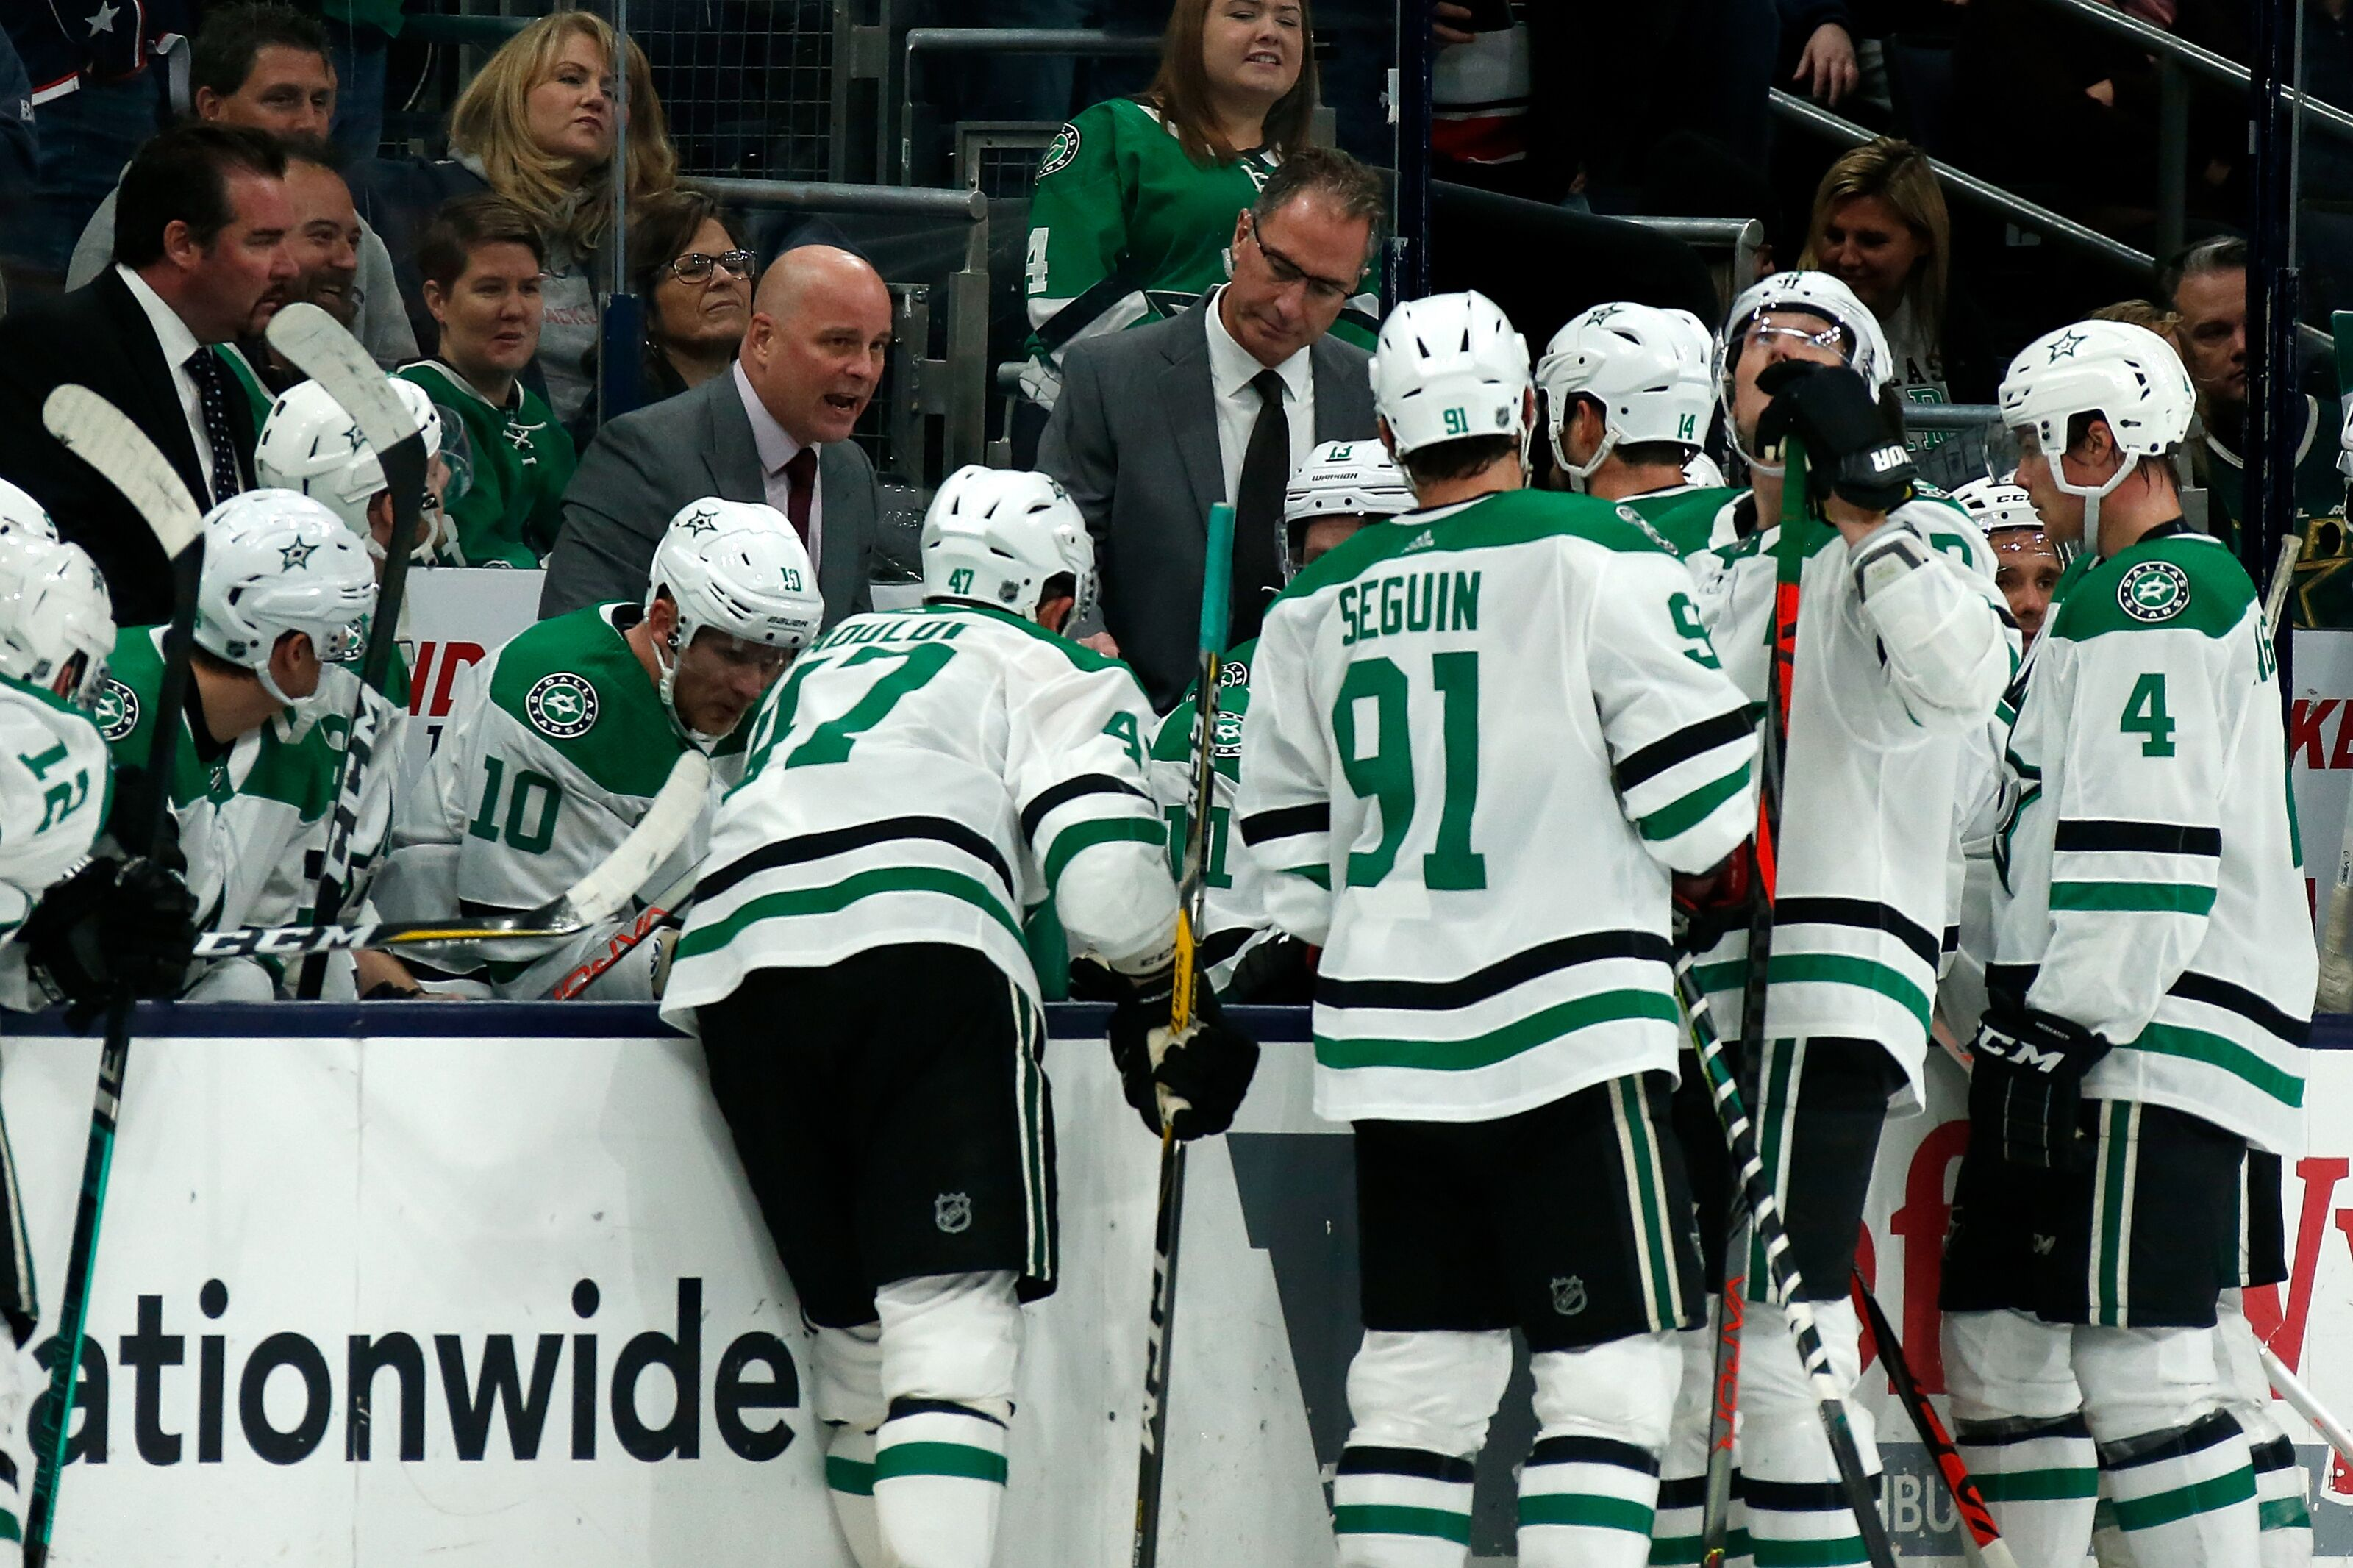 Dallas Stars: Montgomery pushes buttons, team responds